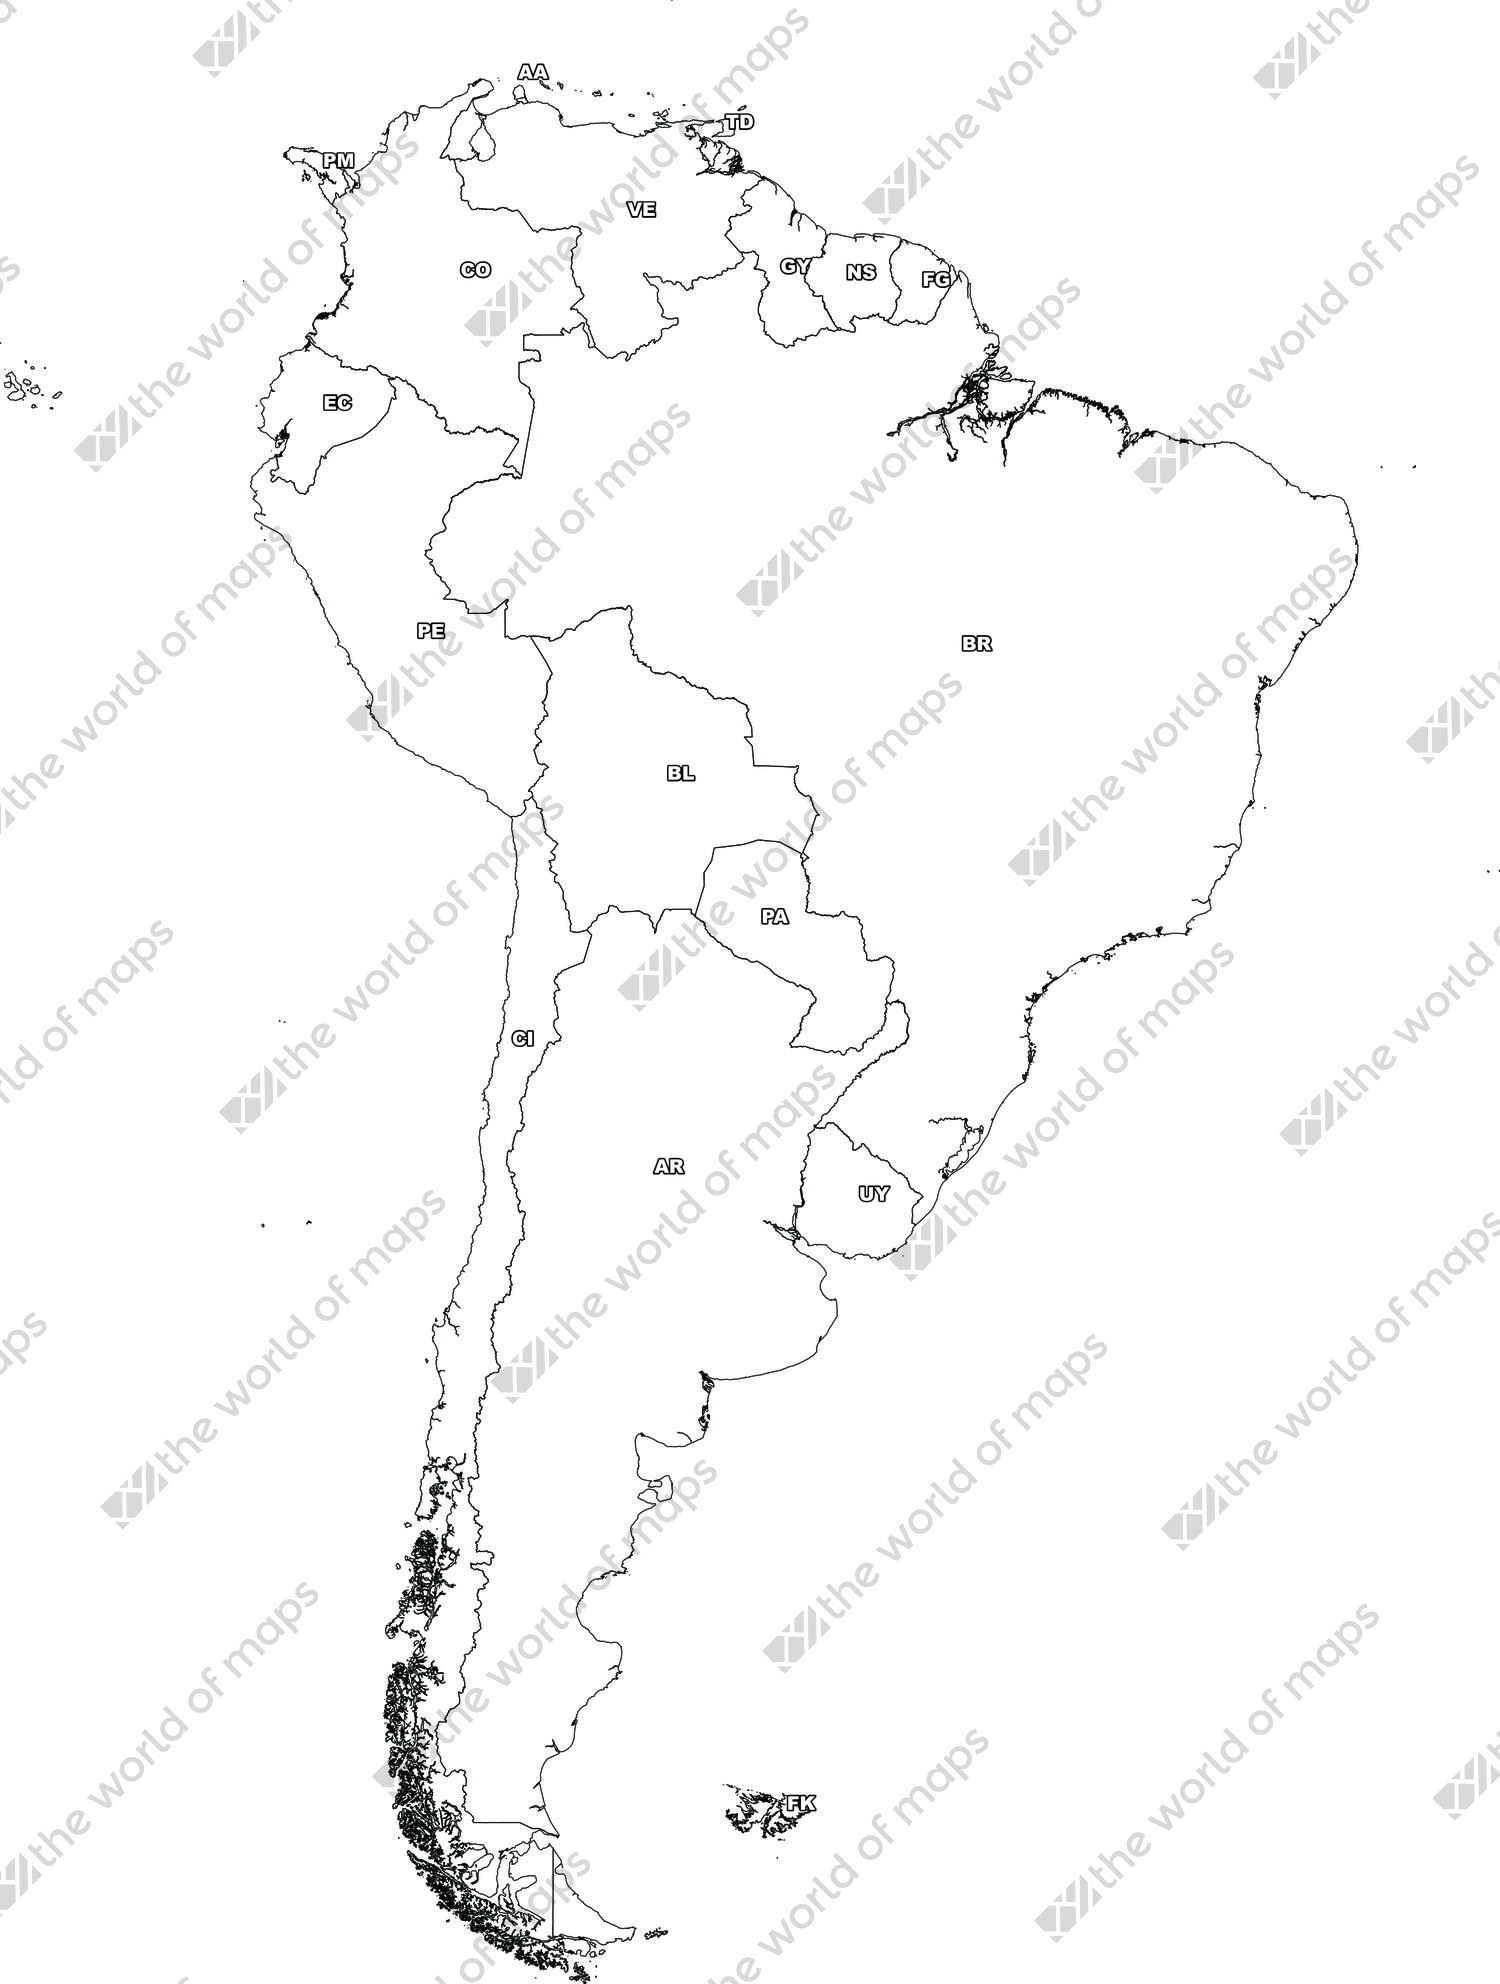 Digital map of South America (free)